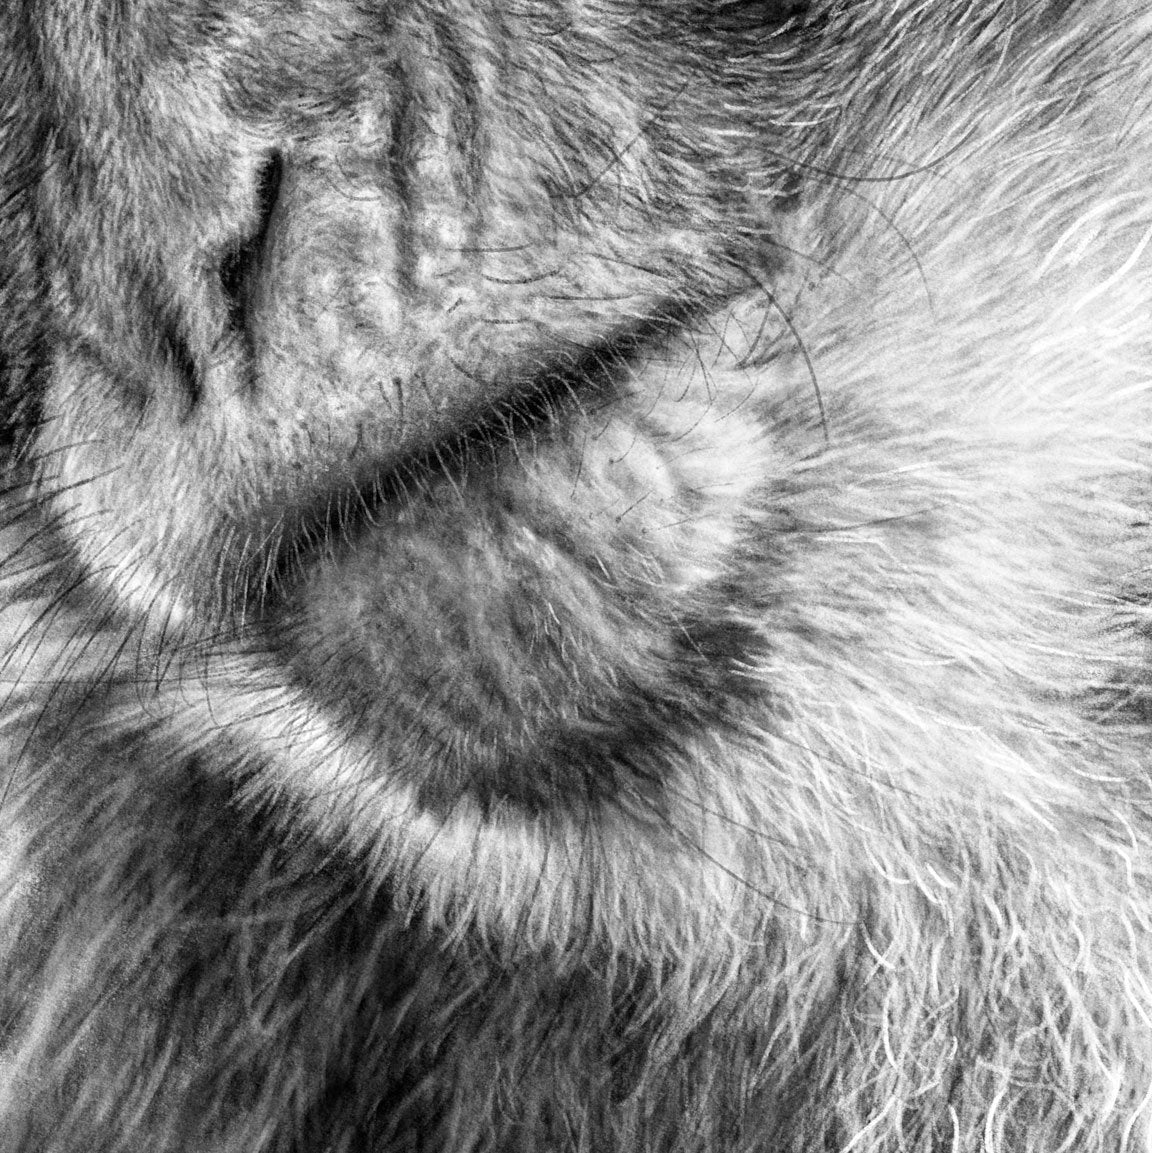 Macaques Drawing Close-up - The Thriving Wild